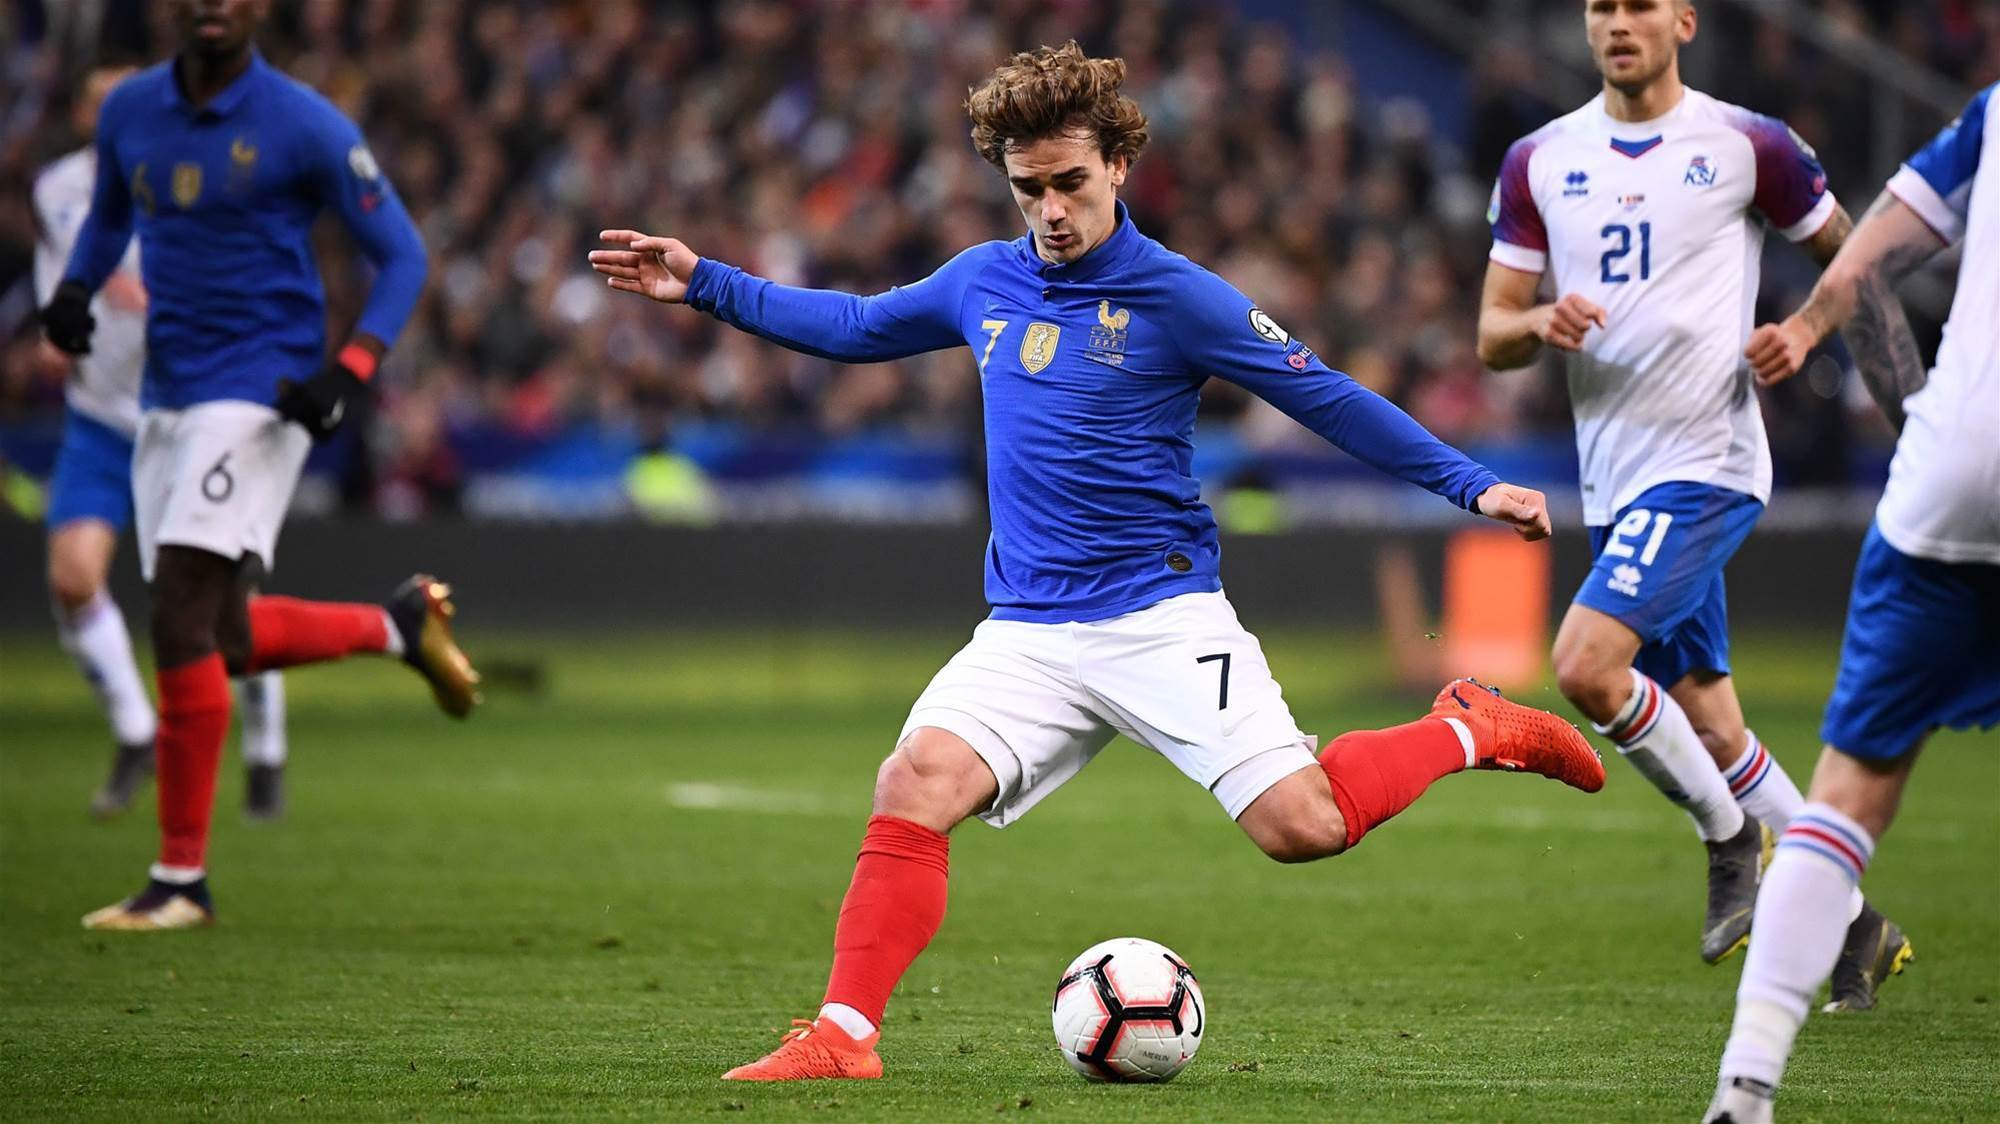 France mark 100 years with commemorative jersey and 4-0 win over Iceland